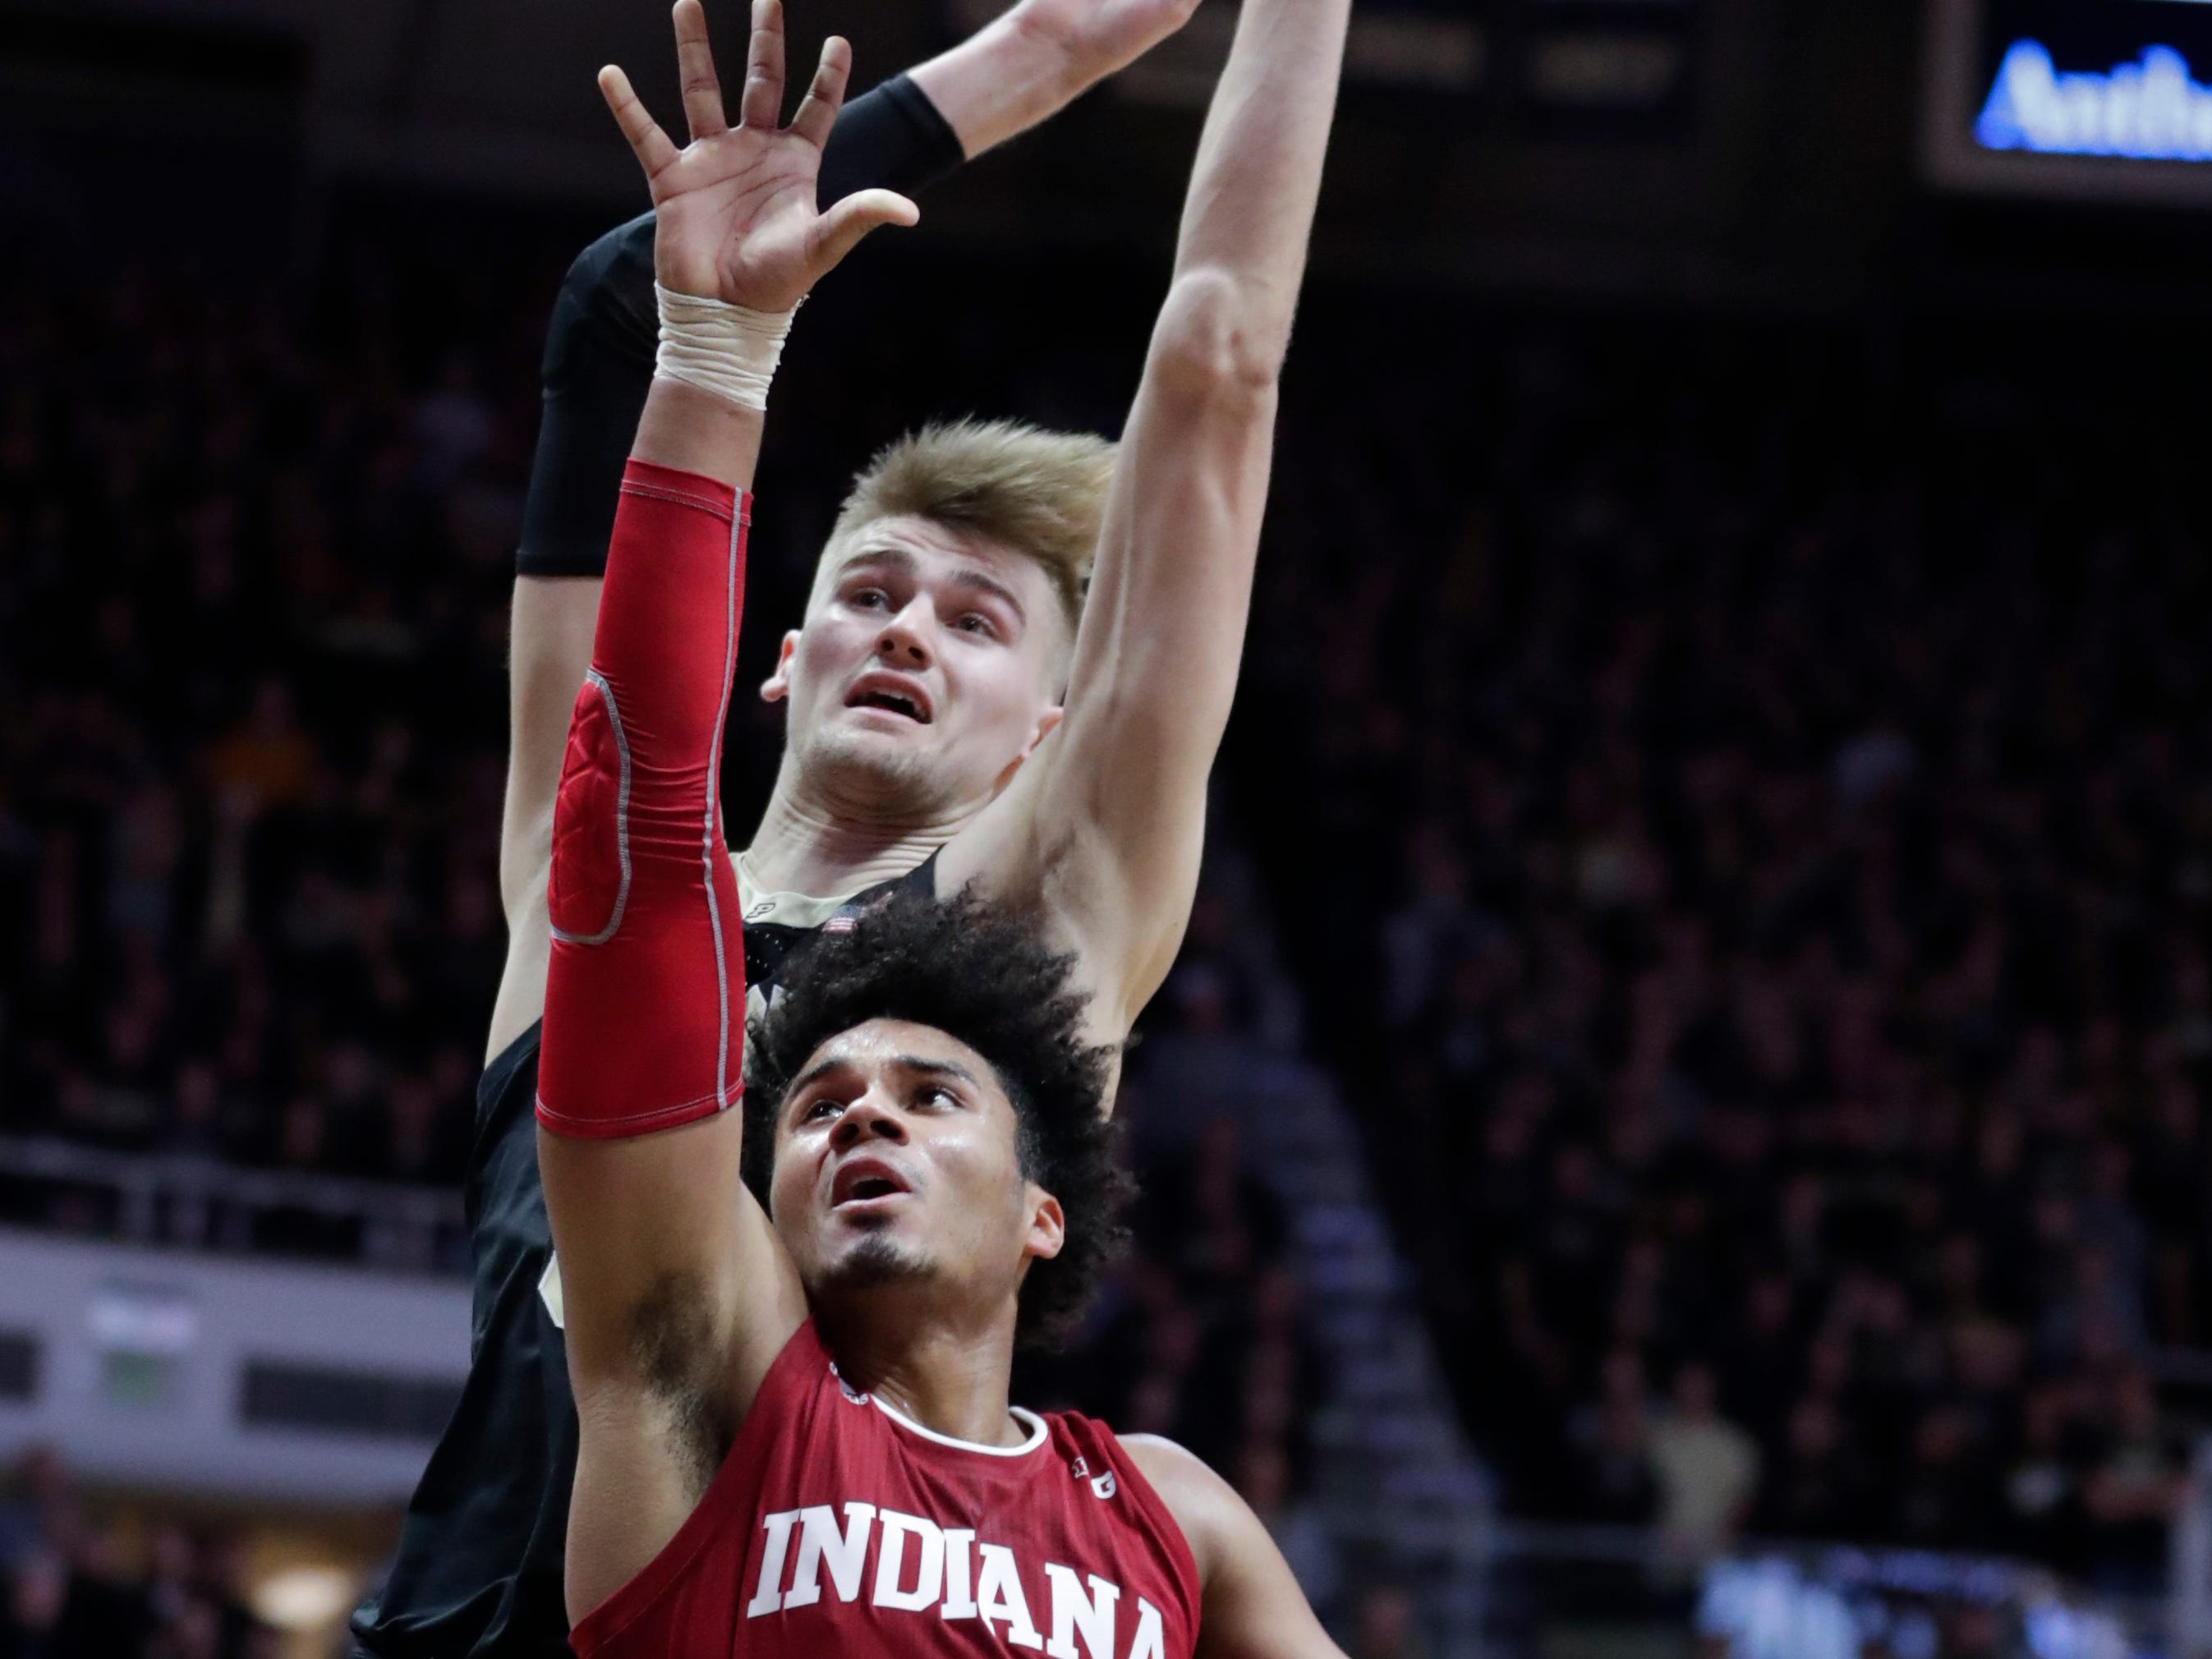 Purdue center Matt Haarms (32) comes from behind to block the shot over Indiana forward Justin Smith (3) during the first half in West Lafayette, Ind.